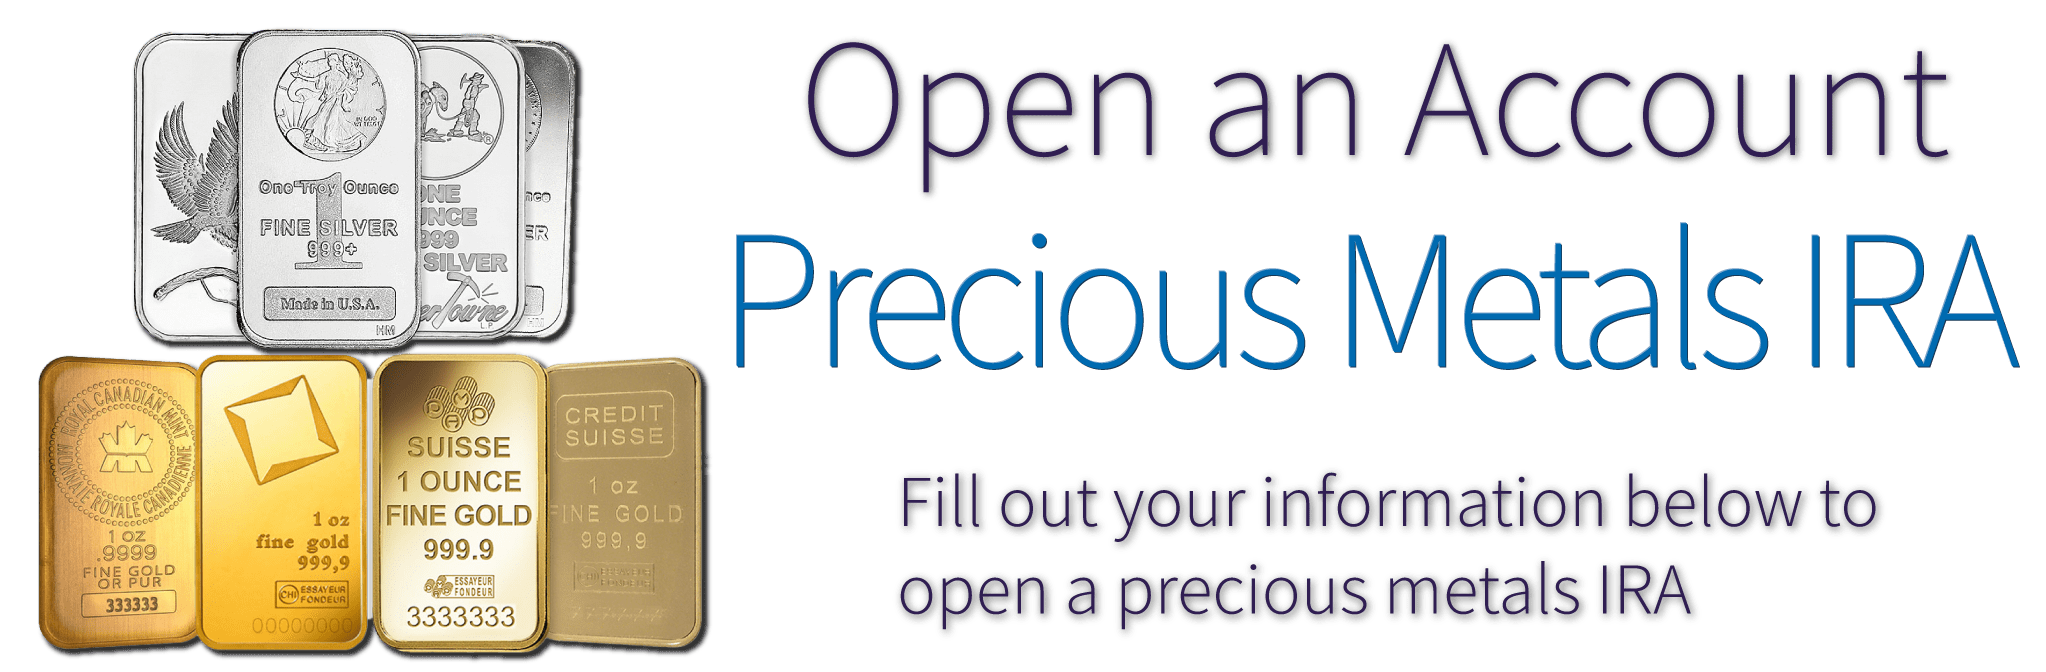 Open a Precious Metals IRA with Oakhurst Metals. Fill out your information below to open a precious metals IRA